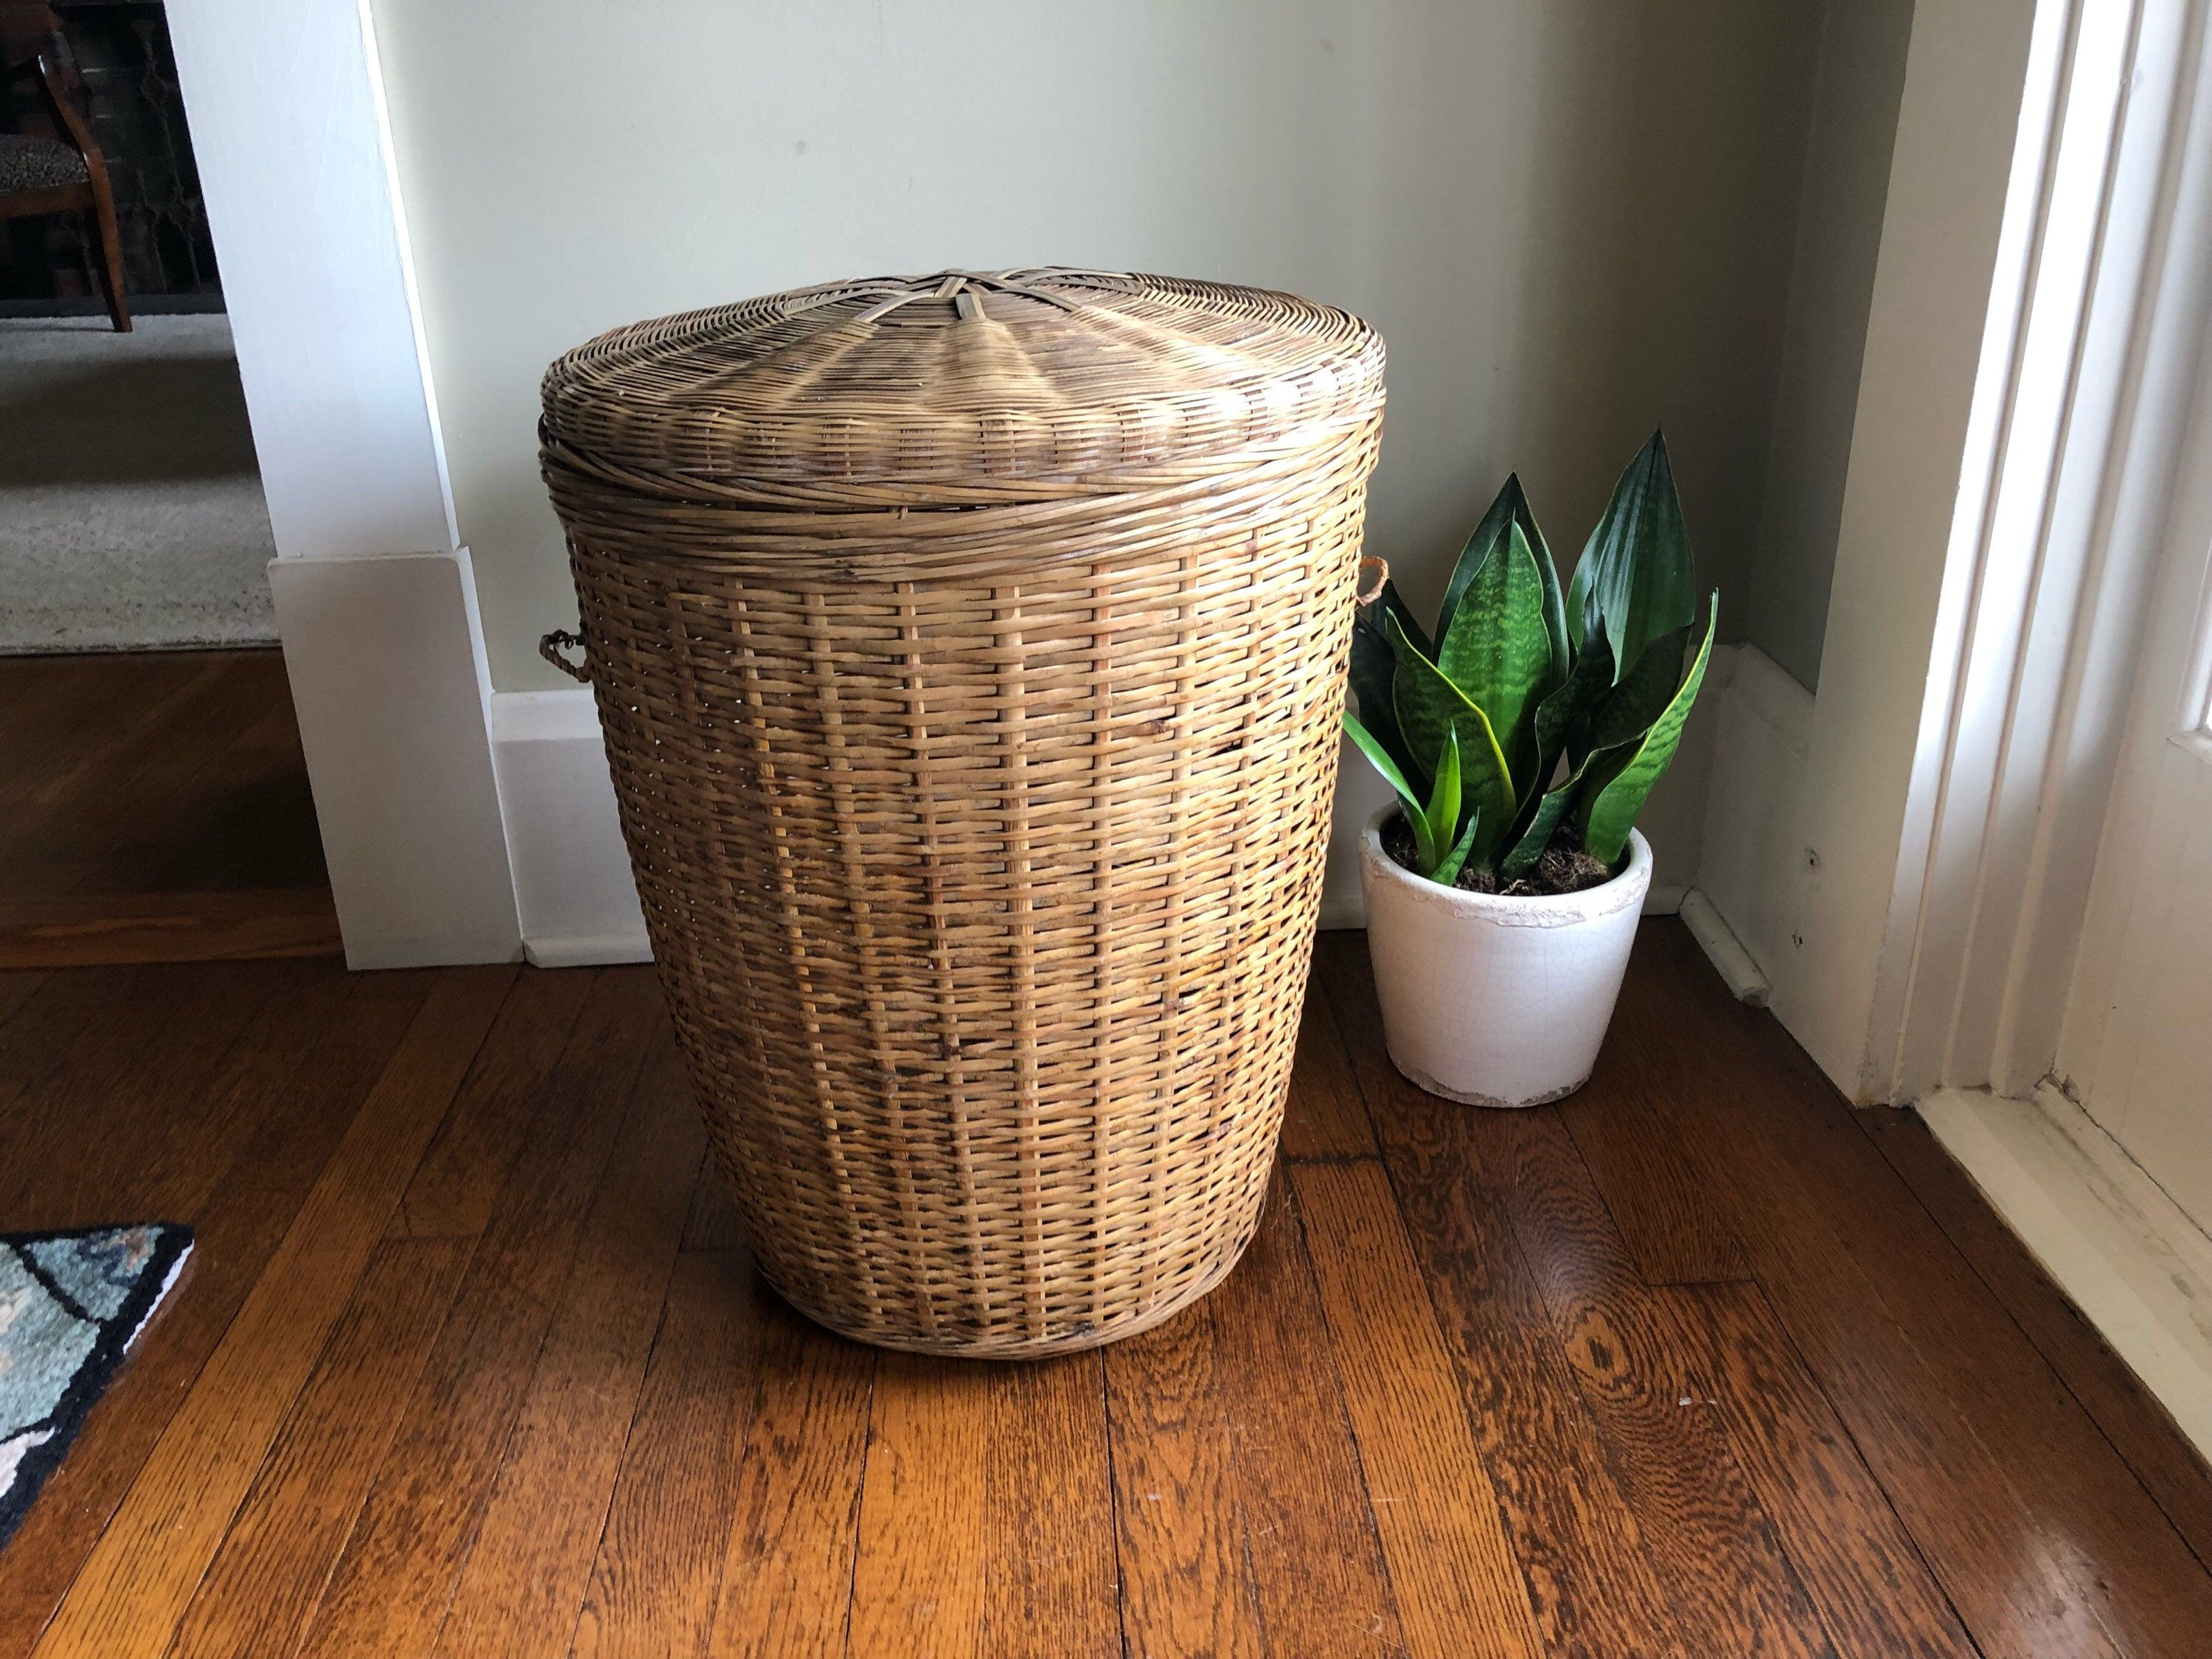 Wicker Laundry Basket With Lid Bamboo Boho Bohemian Hamper Vintage Retro By Shhhitsvintage On Etsy Https Www E Laundry Basket With Lid Retro Vintage Wicker